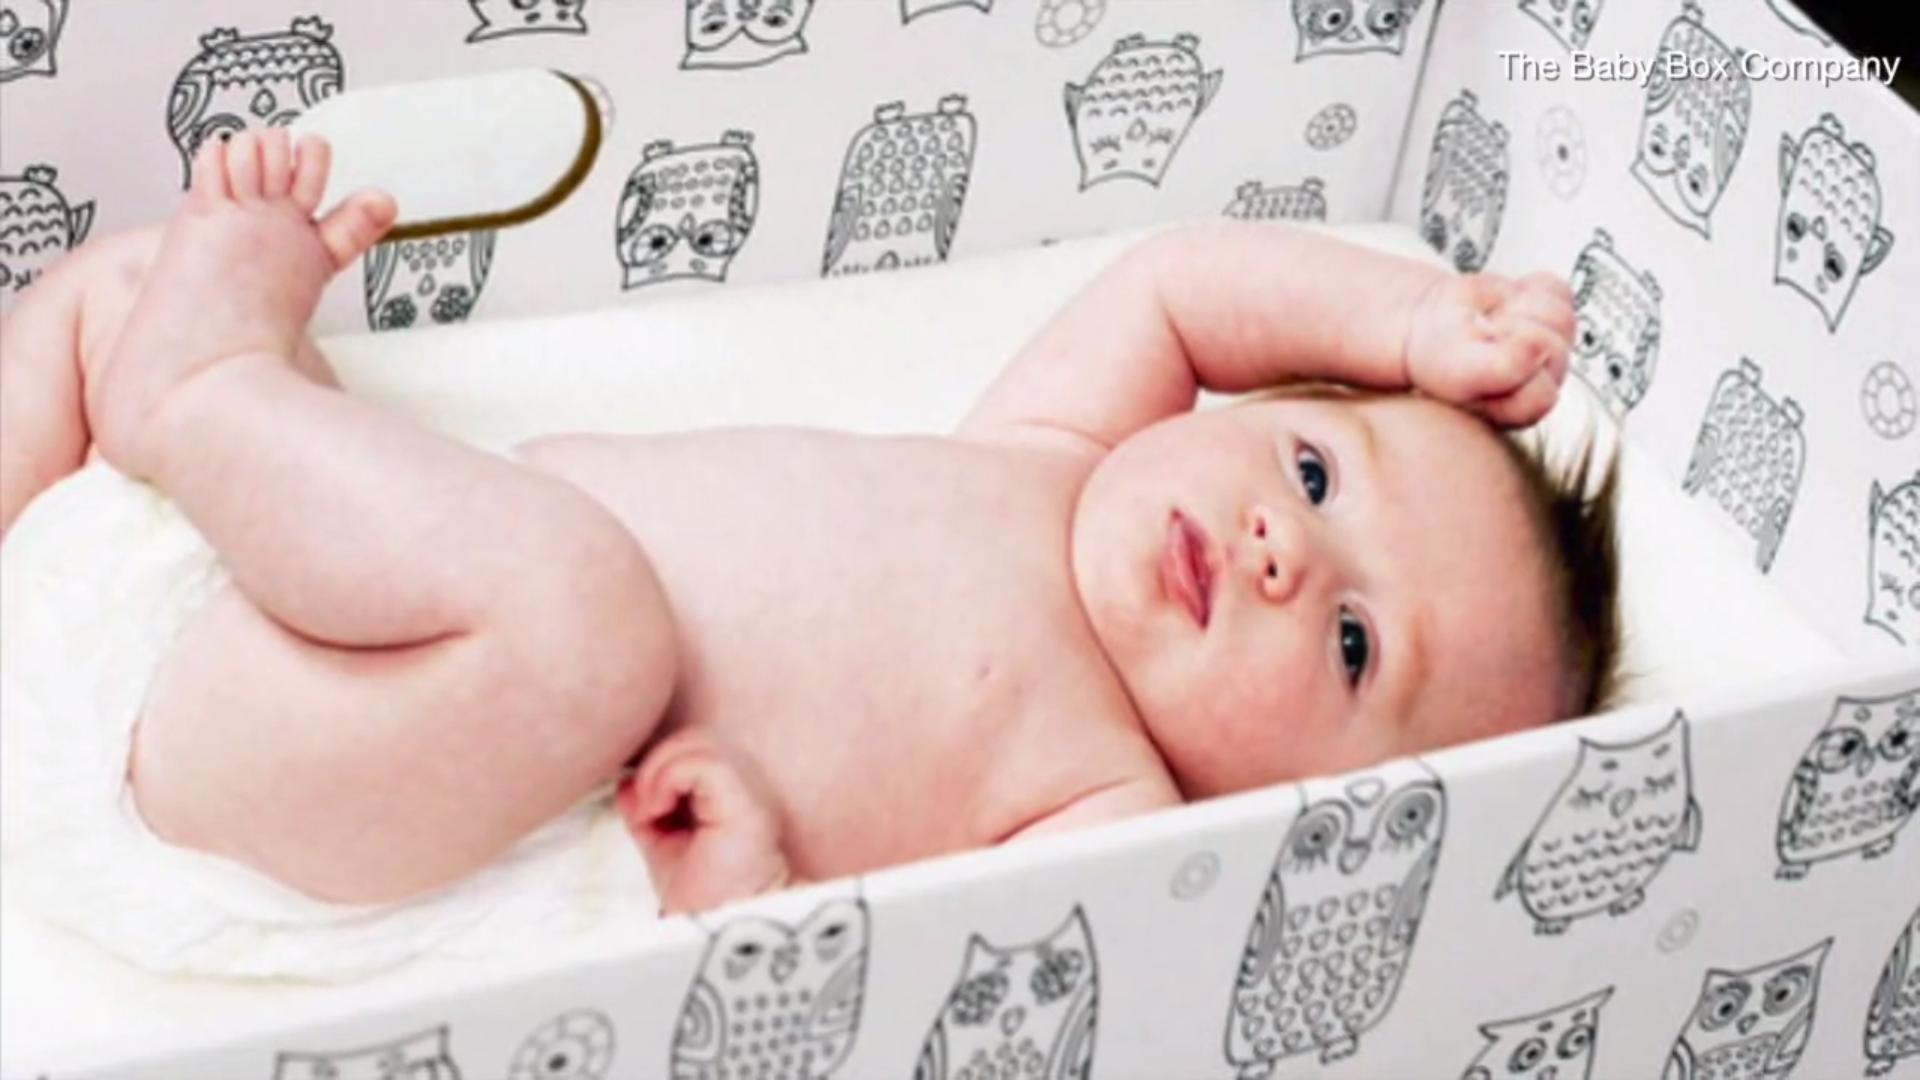 Why Some States Are Giving Out Free 'Baby Boxes'